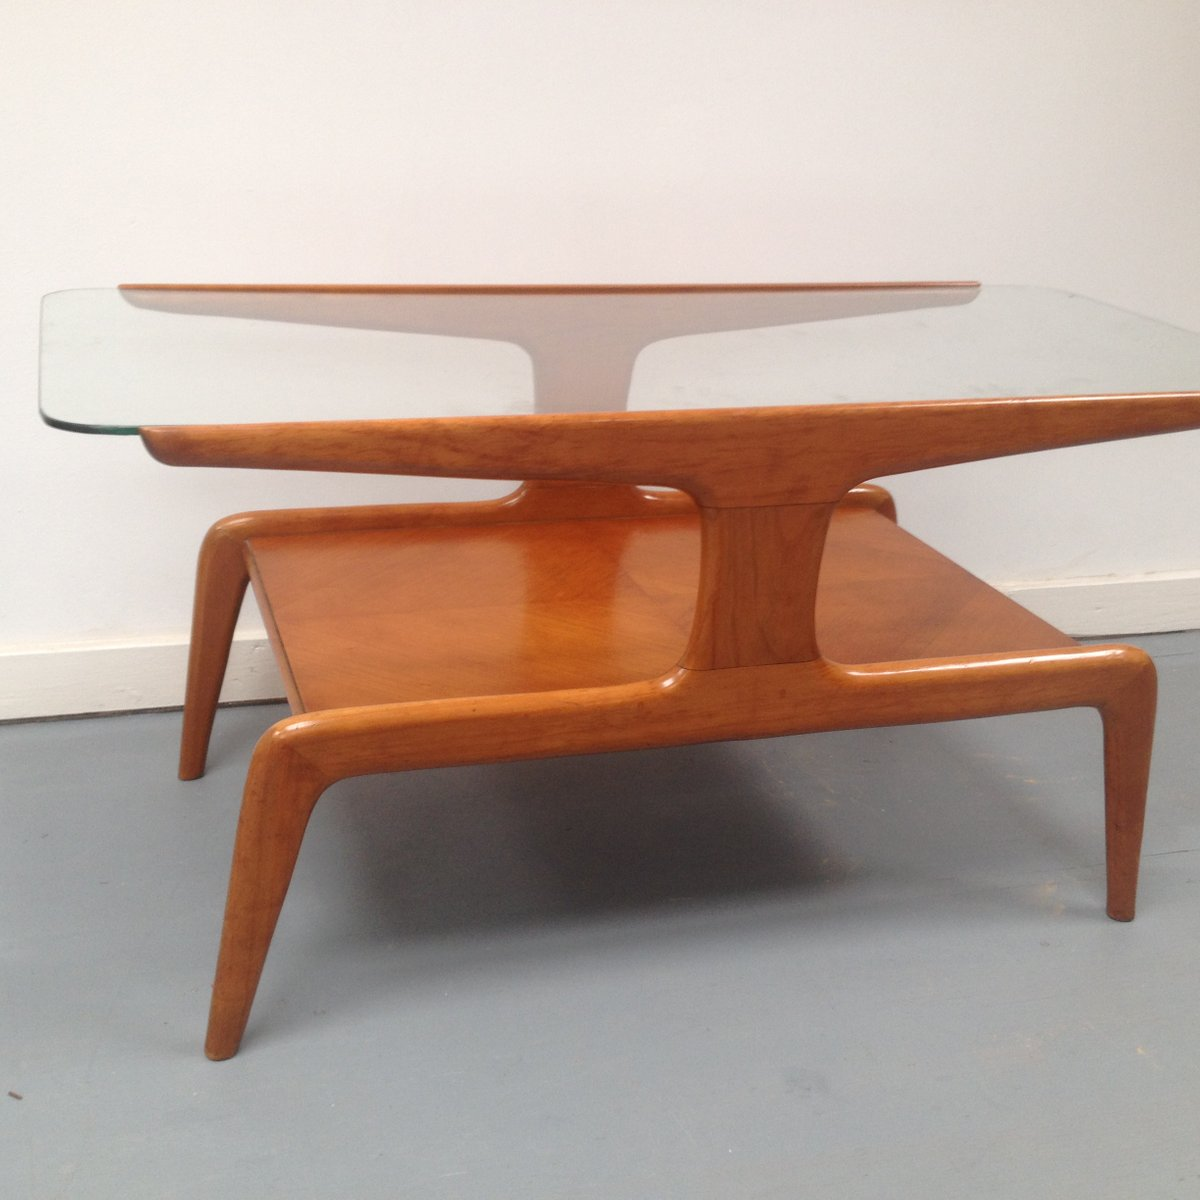 Vintage Italian Coffee Table By Gio Pointi For Domus Nova For Sale At Pamono